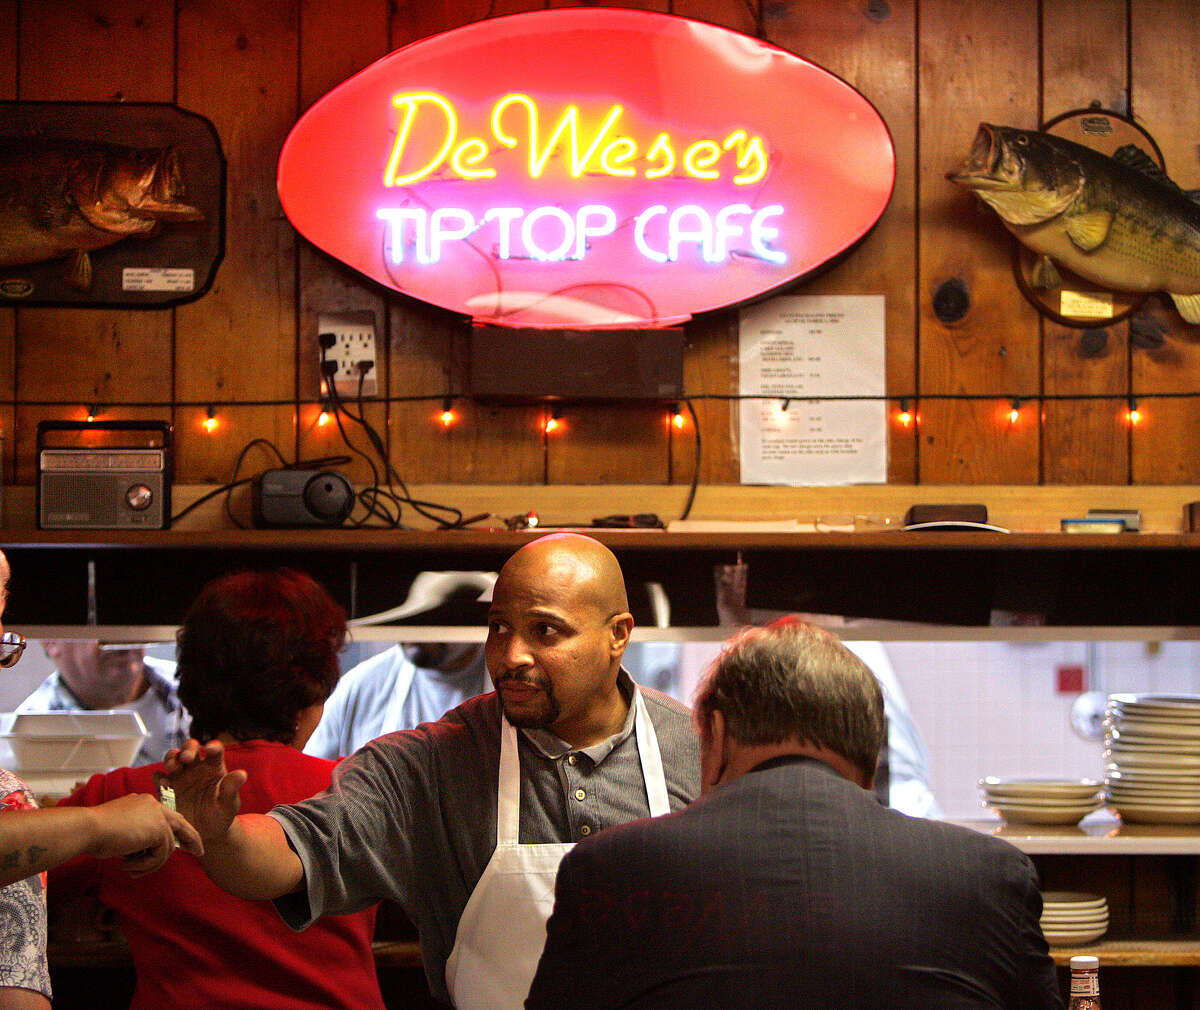 DeWese's Tip Top Cafe was featured in the 2008 Comfort Food episode of Diners, Drive-In's and Dives with Guy Fieri.